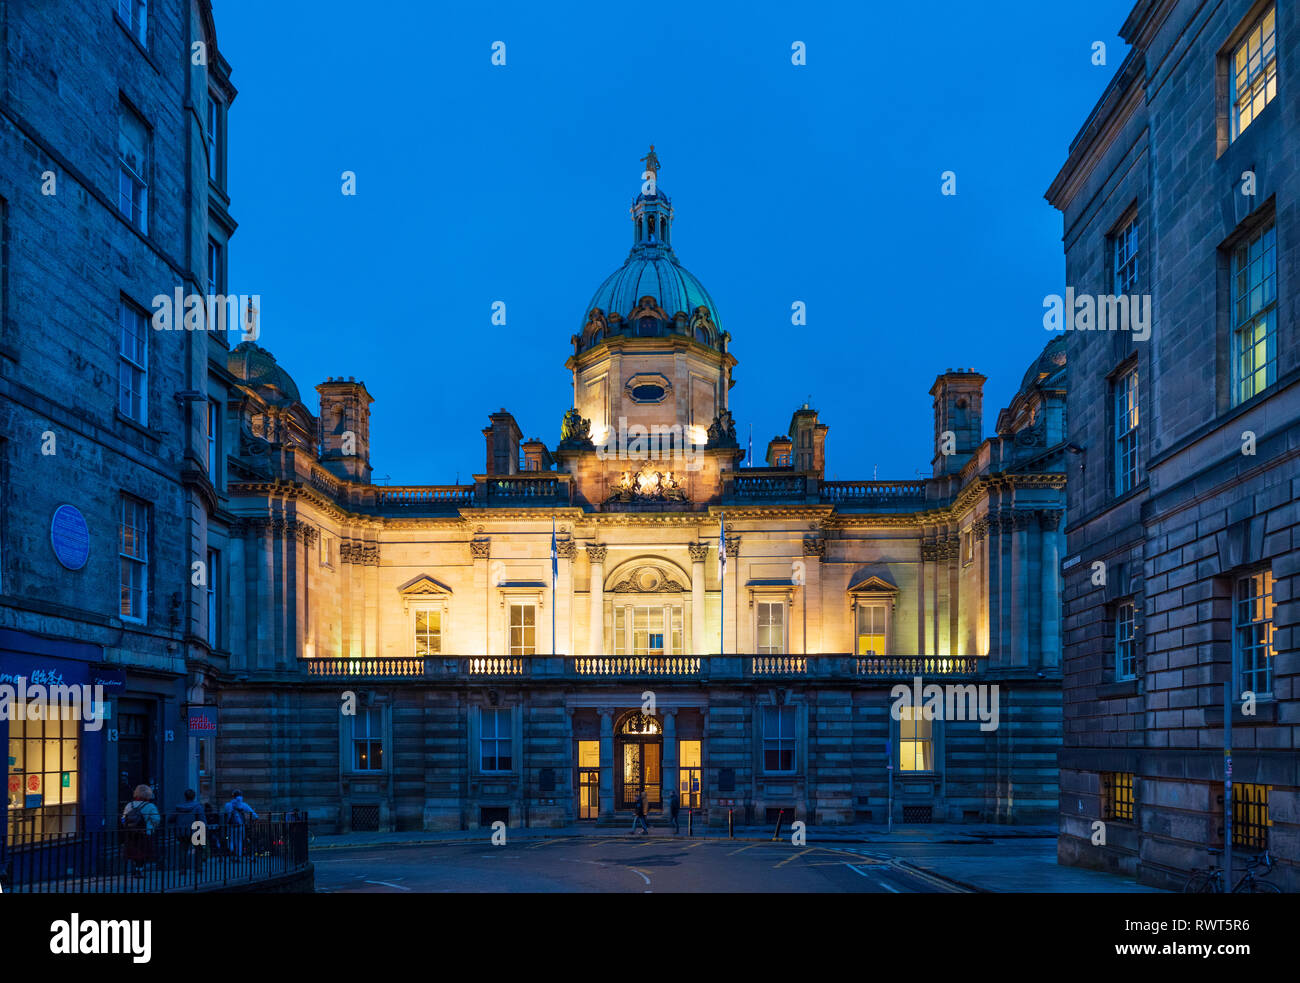 Night view of Scottish Headquarters of Lloyds Banking Group on The Mound In Edinburgh built in 1806 as Head Office of Bank of Scotland, UK - Stock Image